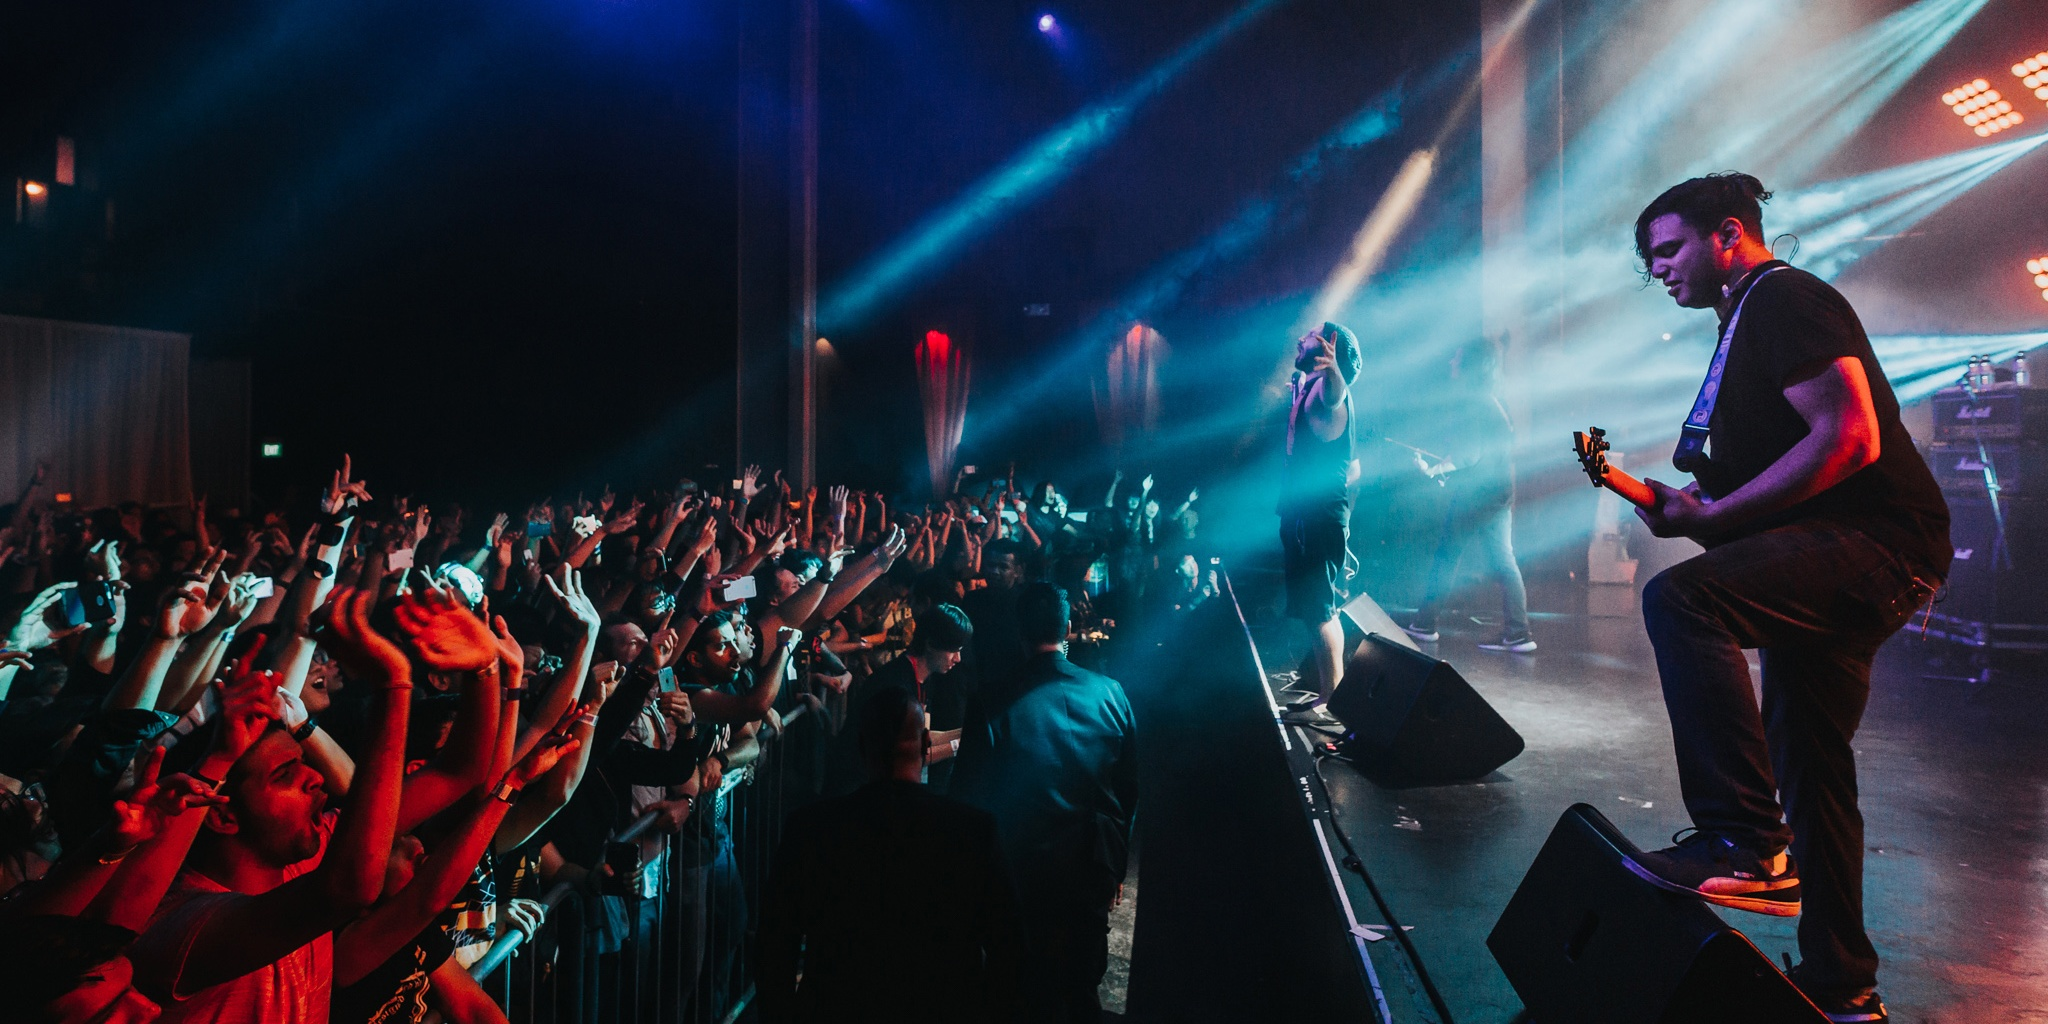 GIG REPORT: Periphery made the long wait worth it for fans in Singapore